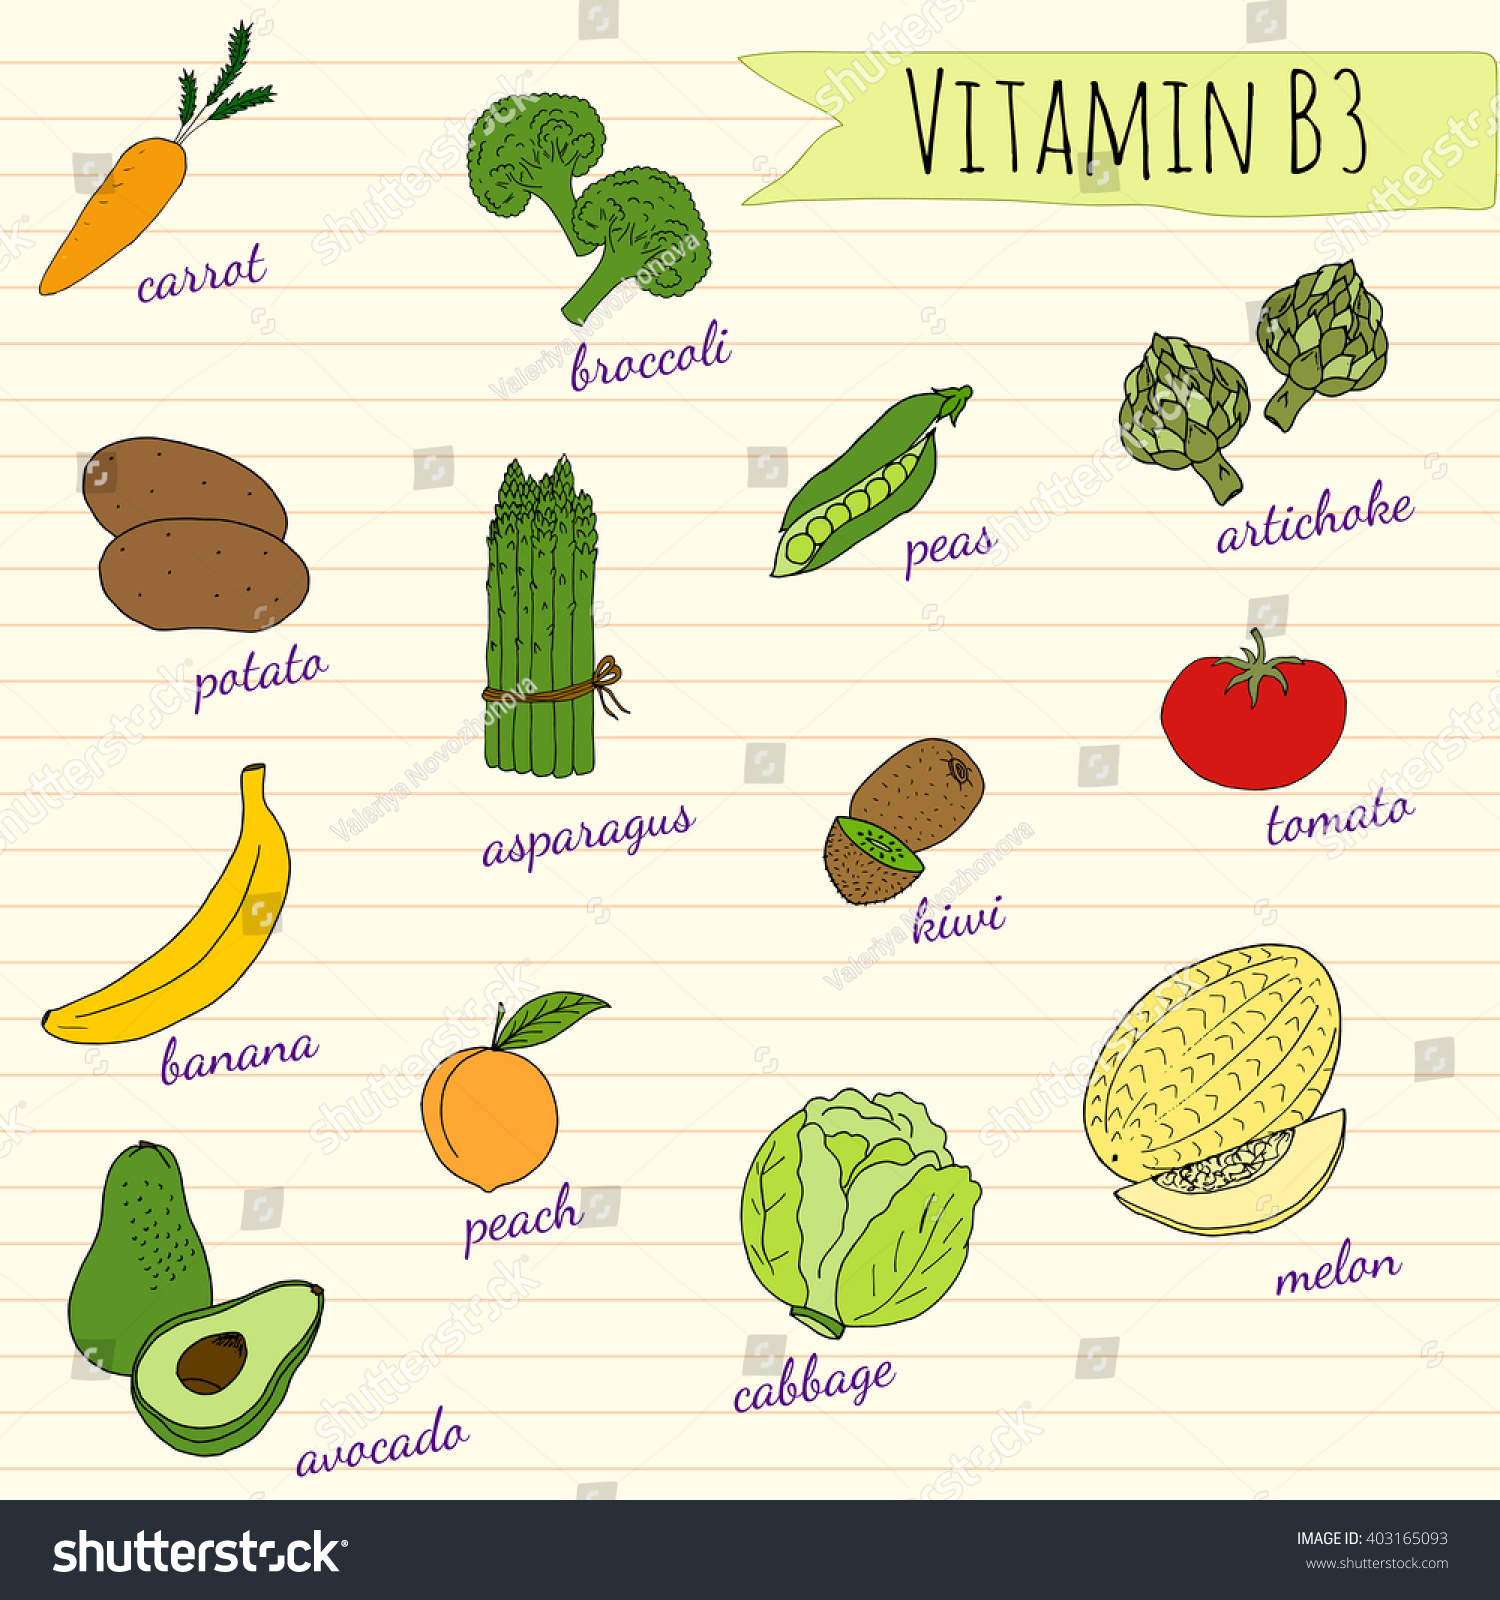 Is there vitamin B in vegetables and fruits 83